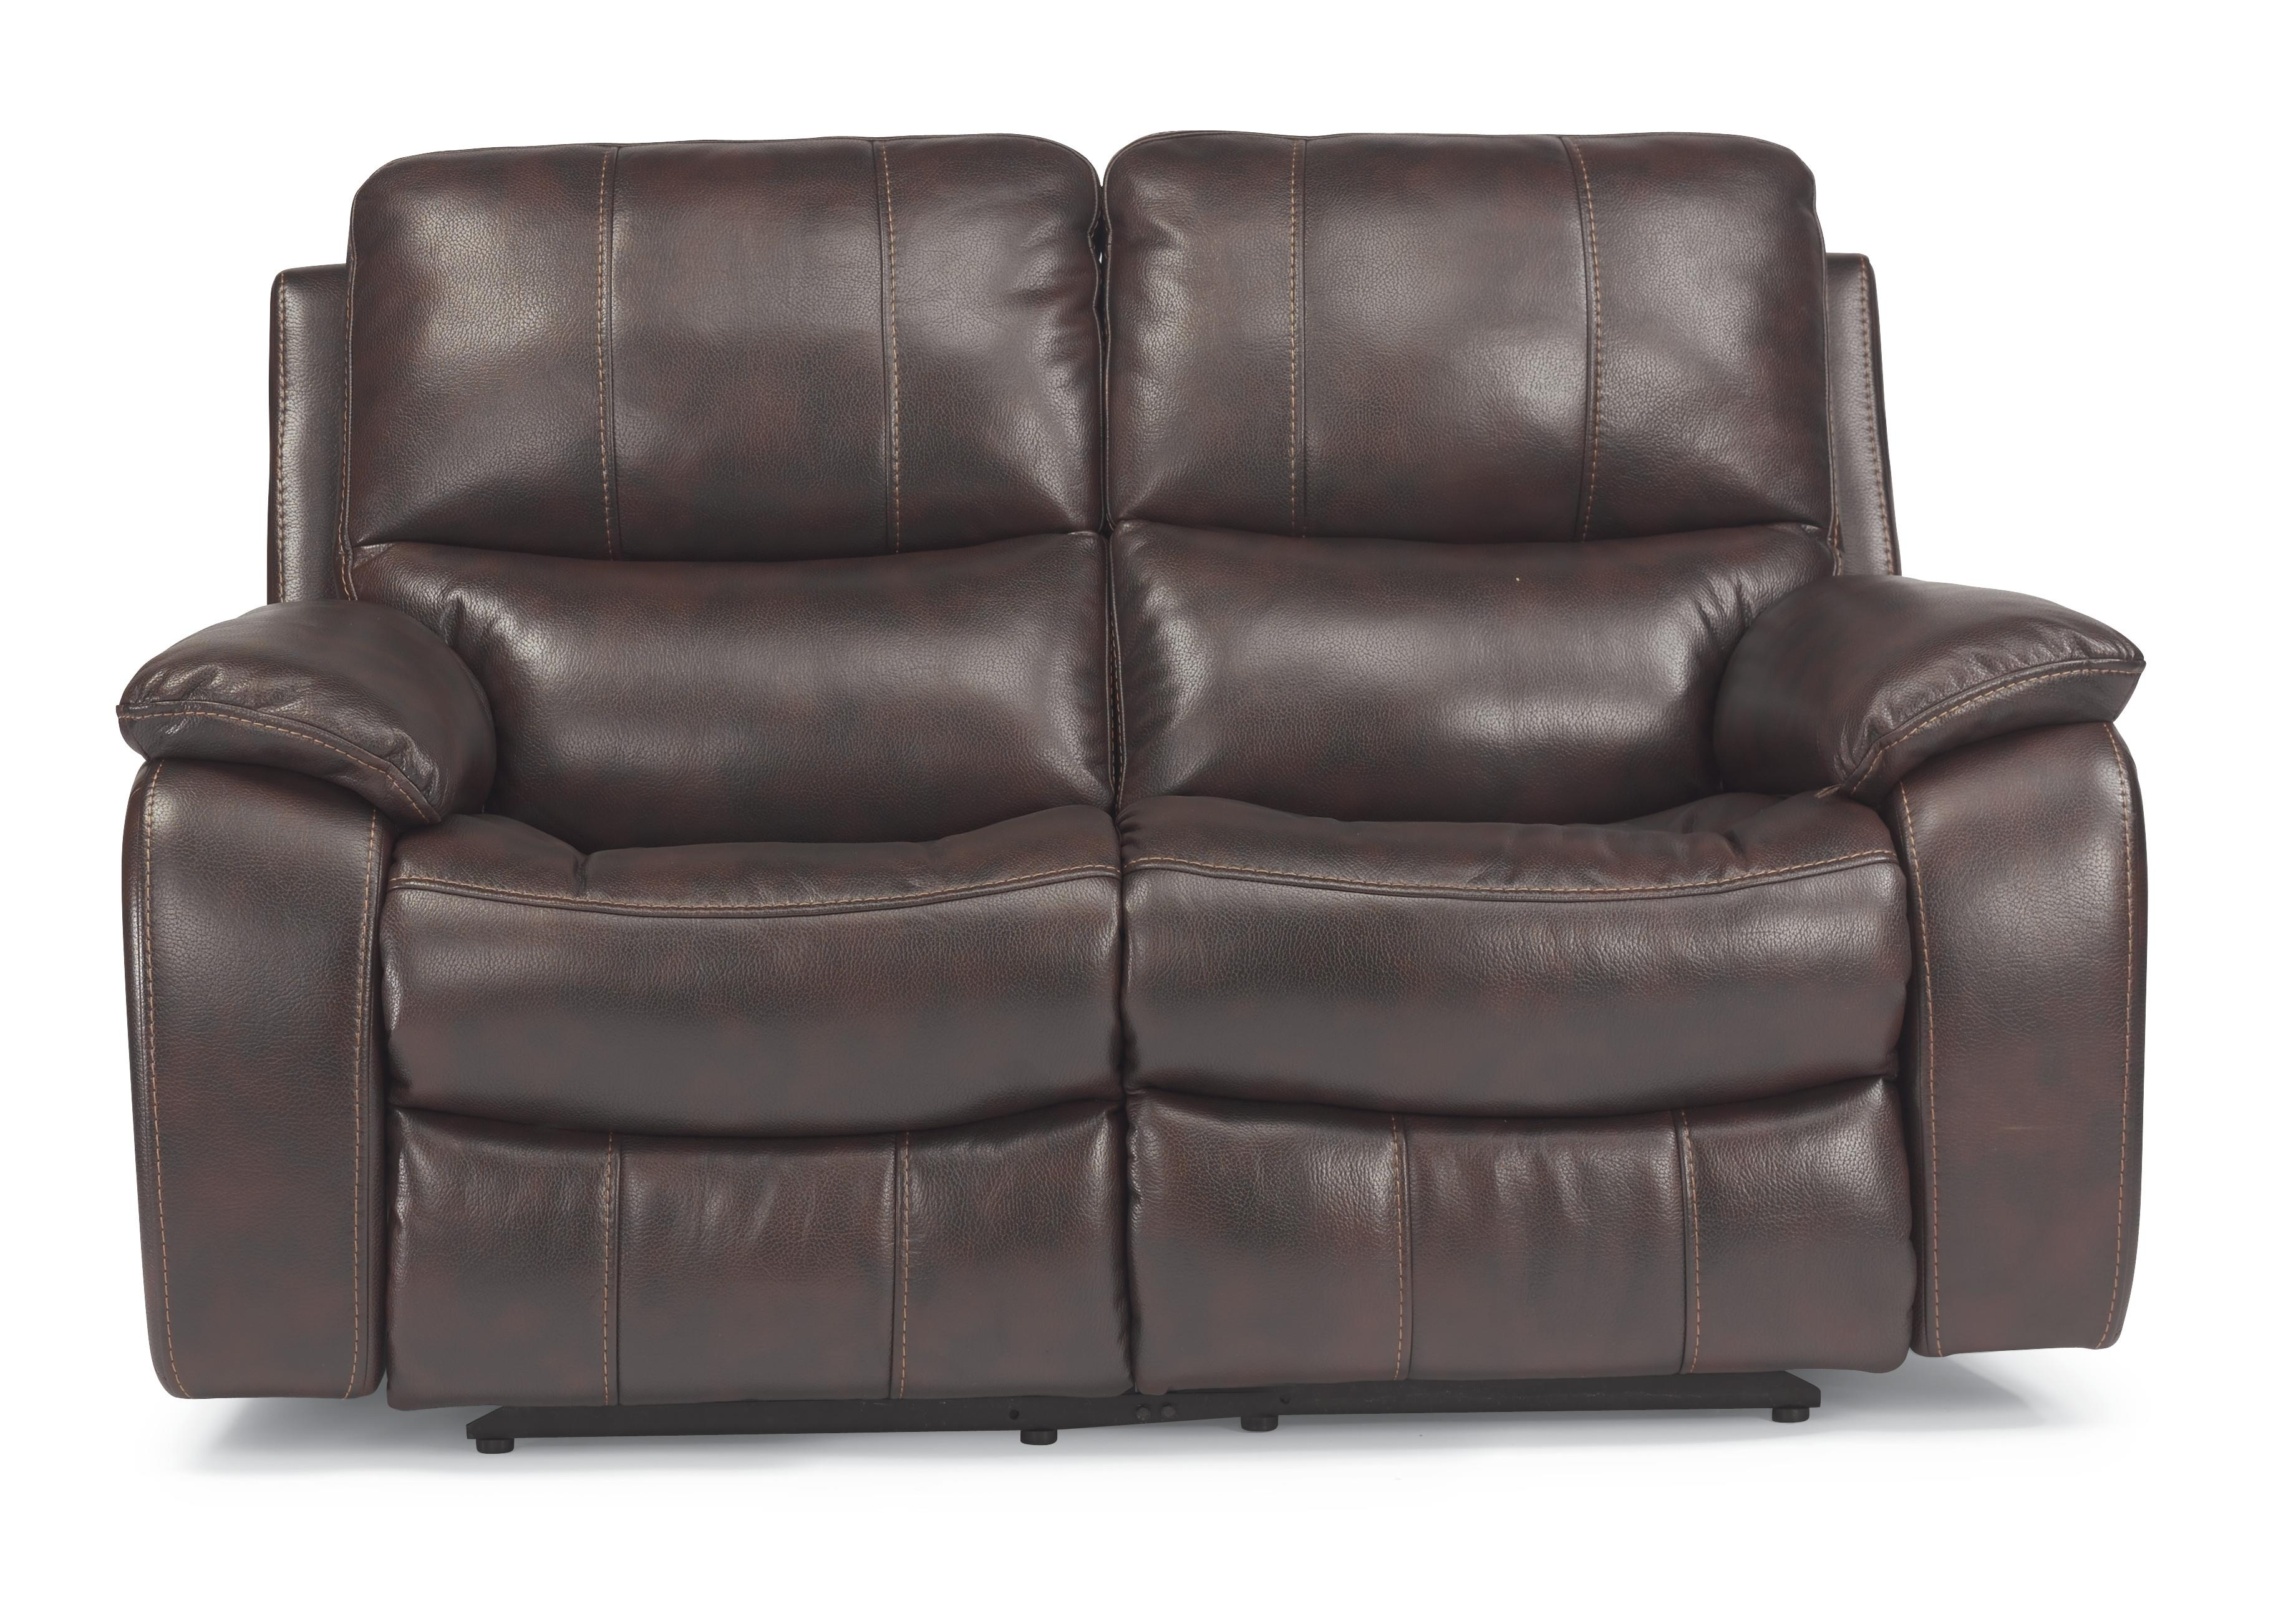 Recliner Pillow Latitudes Woodstock Double Power Reclining Love Seat With Pillow Arms By Flexsteel At Dunk Bright Furniture